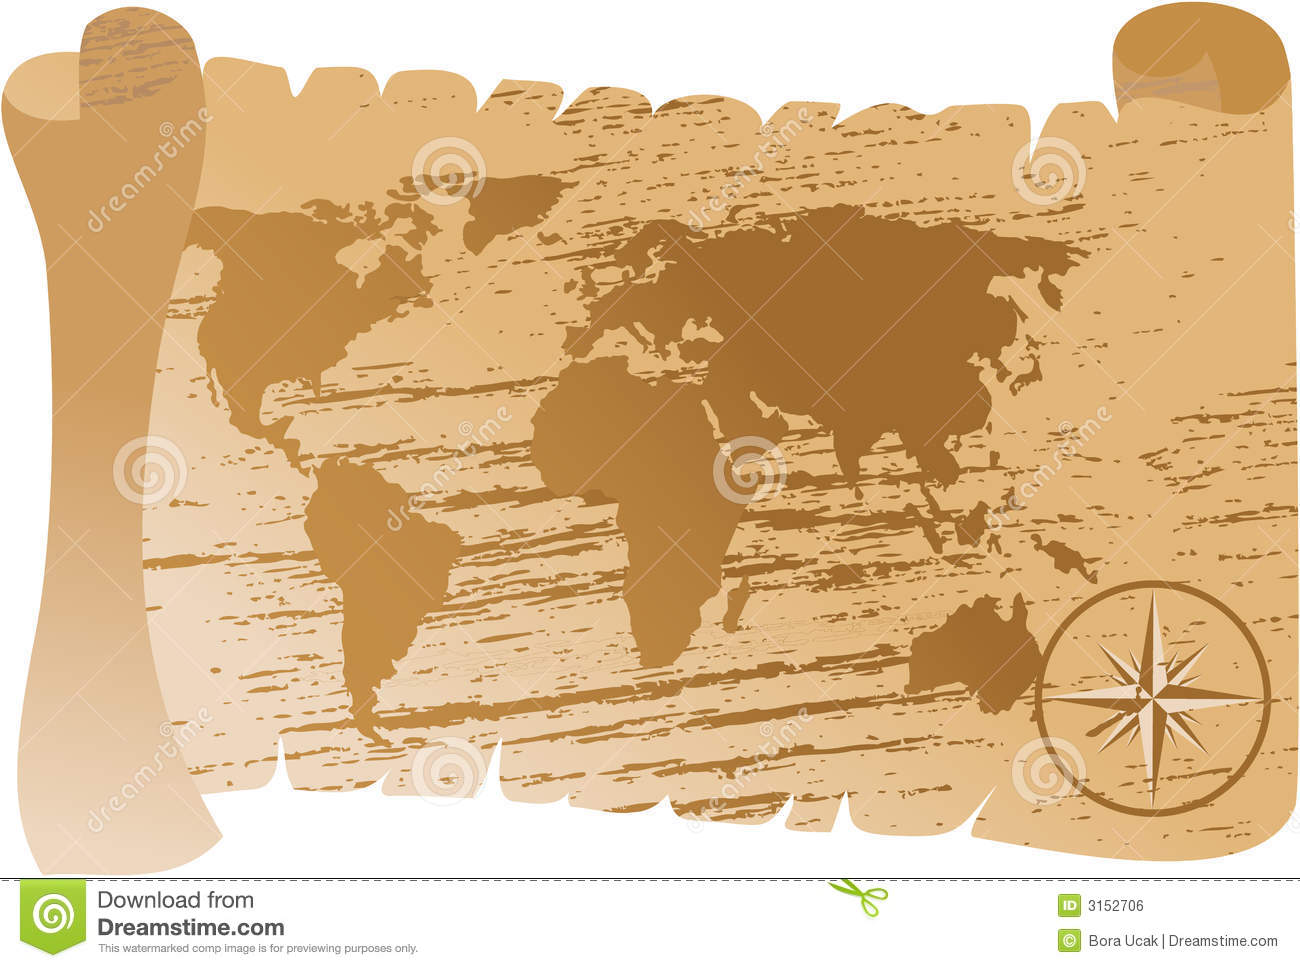 Old world map vector stock vector illustration of page 3152706 old world map vector gumiabroncs Images